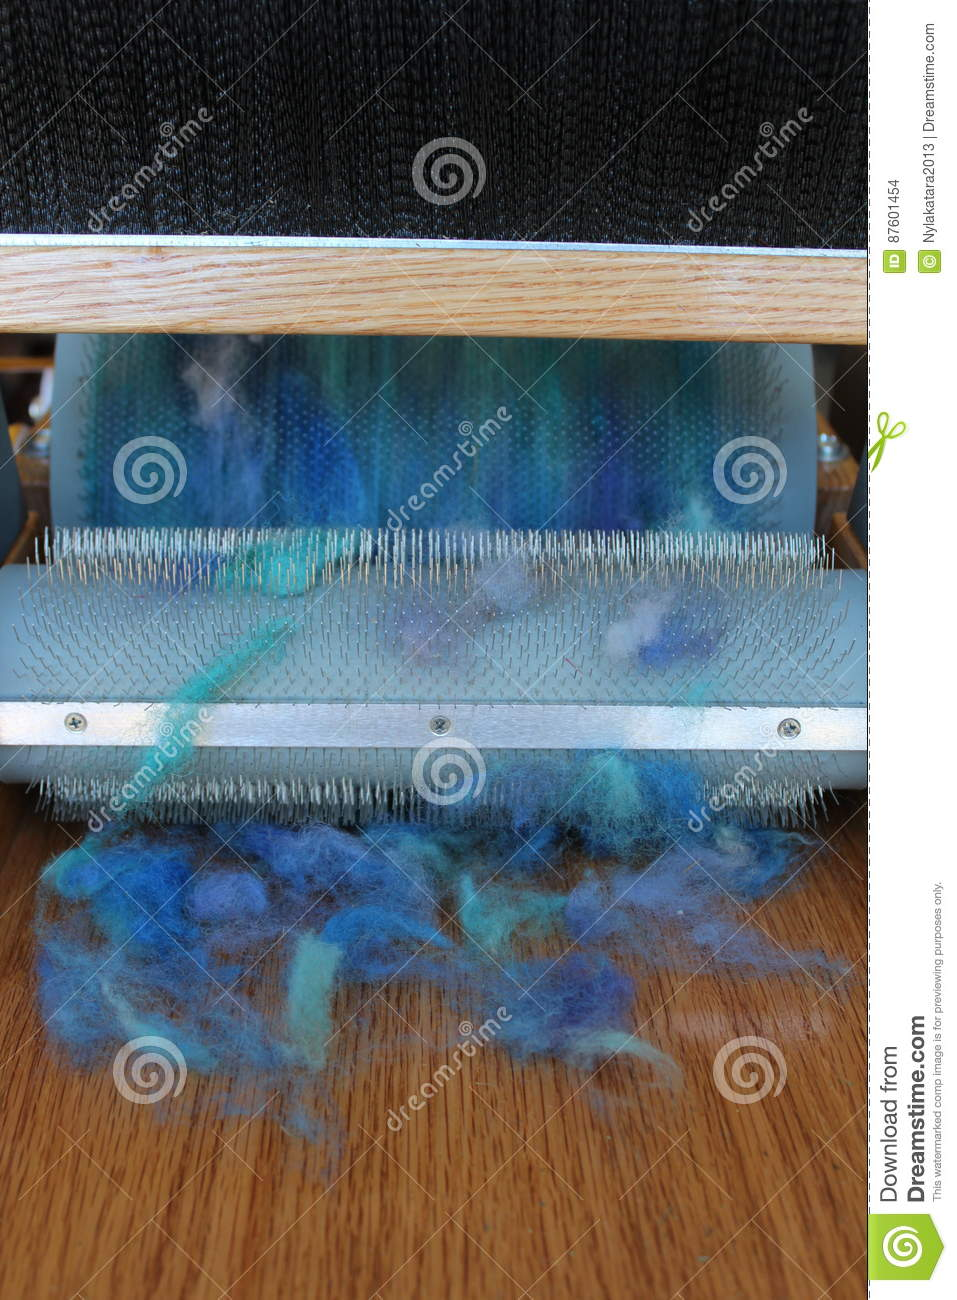 Wool carding stock photo  Image of batts, american, knitters